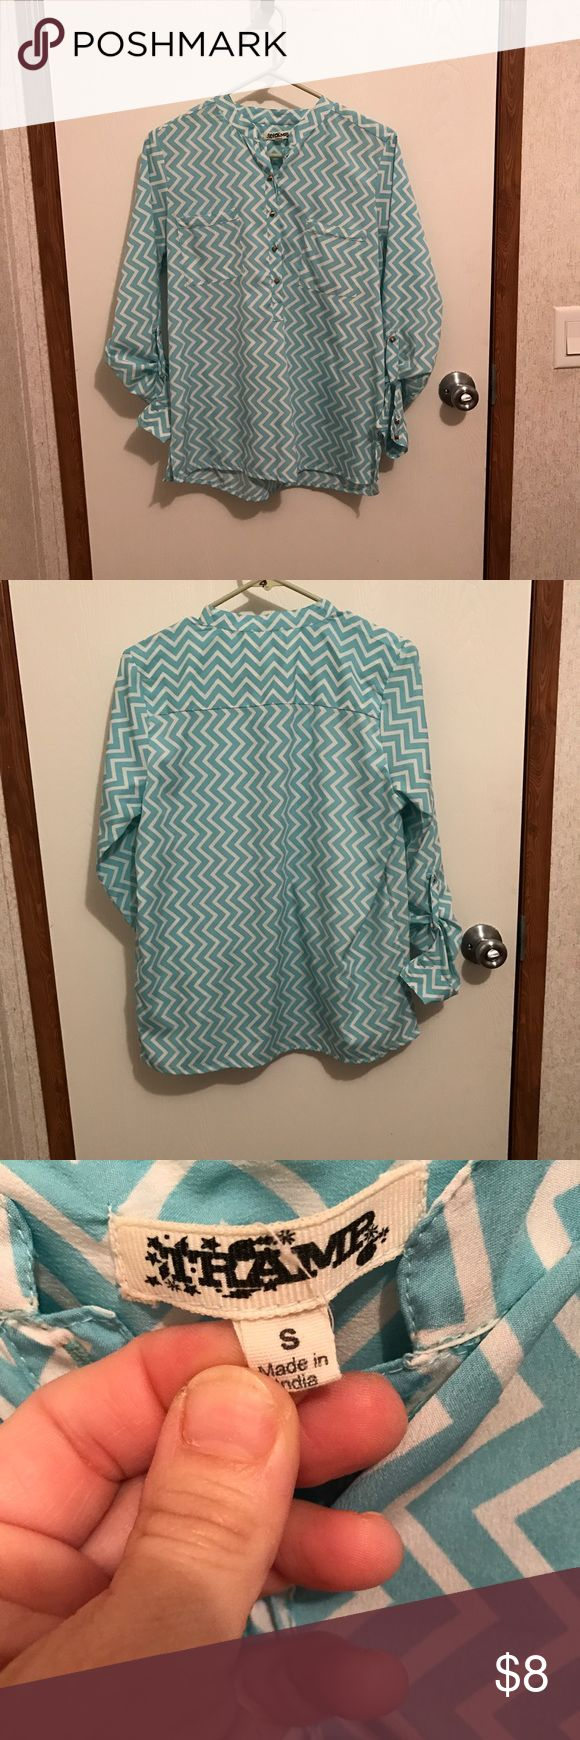 Chevron Shirt size Small Chevron Shirt size Small has a flaw see last picture. Tops Blouses